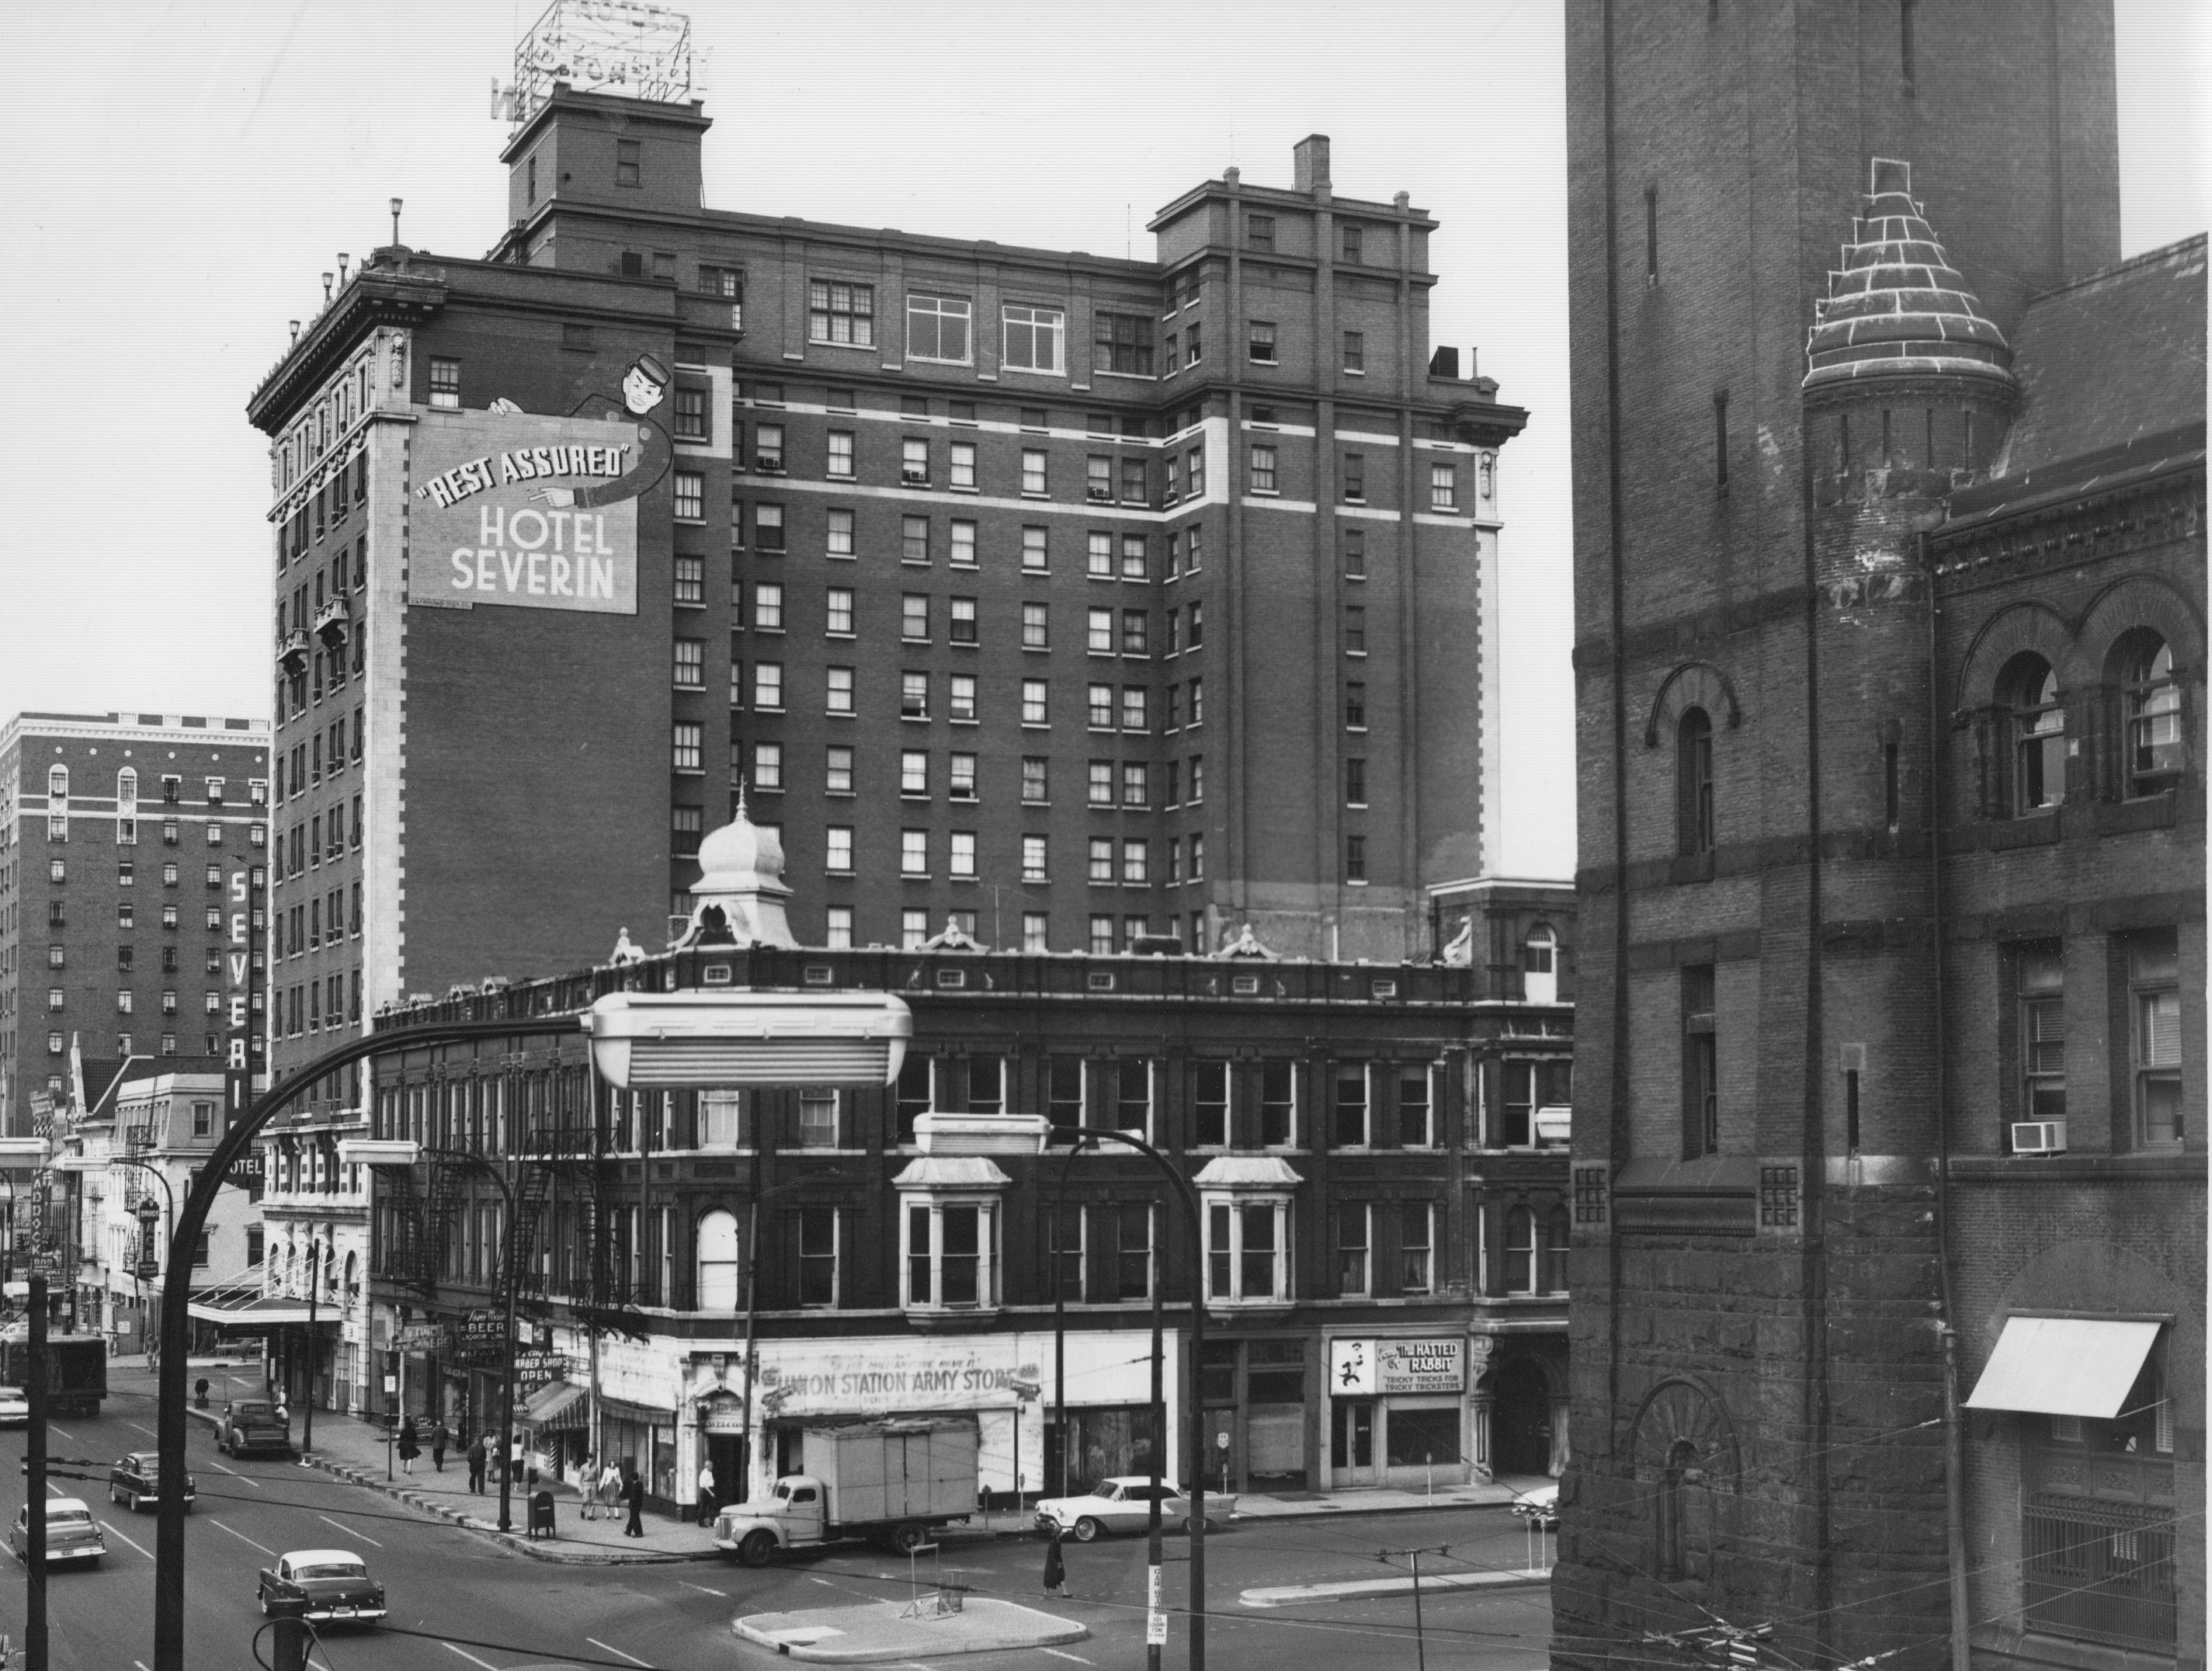 Illinois and South - The Hotel Severin (now the Omni Severin) in the foreground with Union Station to the right.  September 26,1957